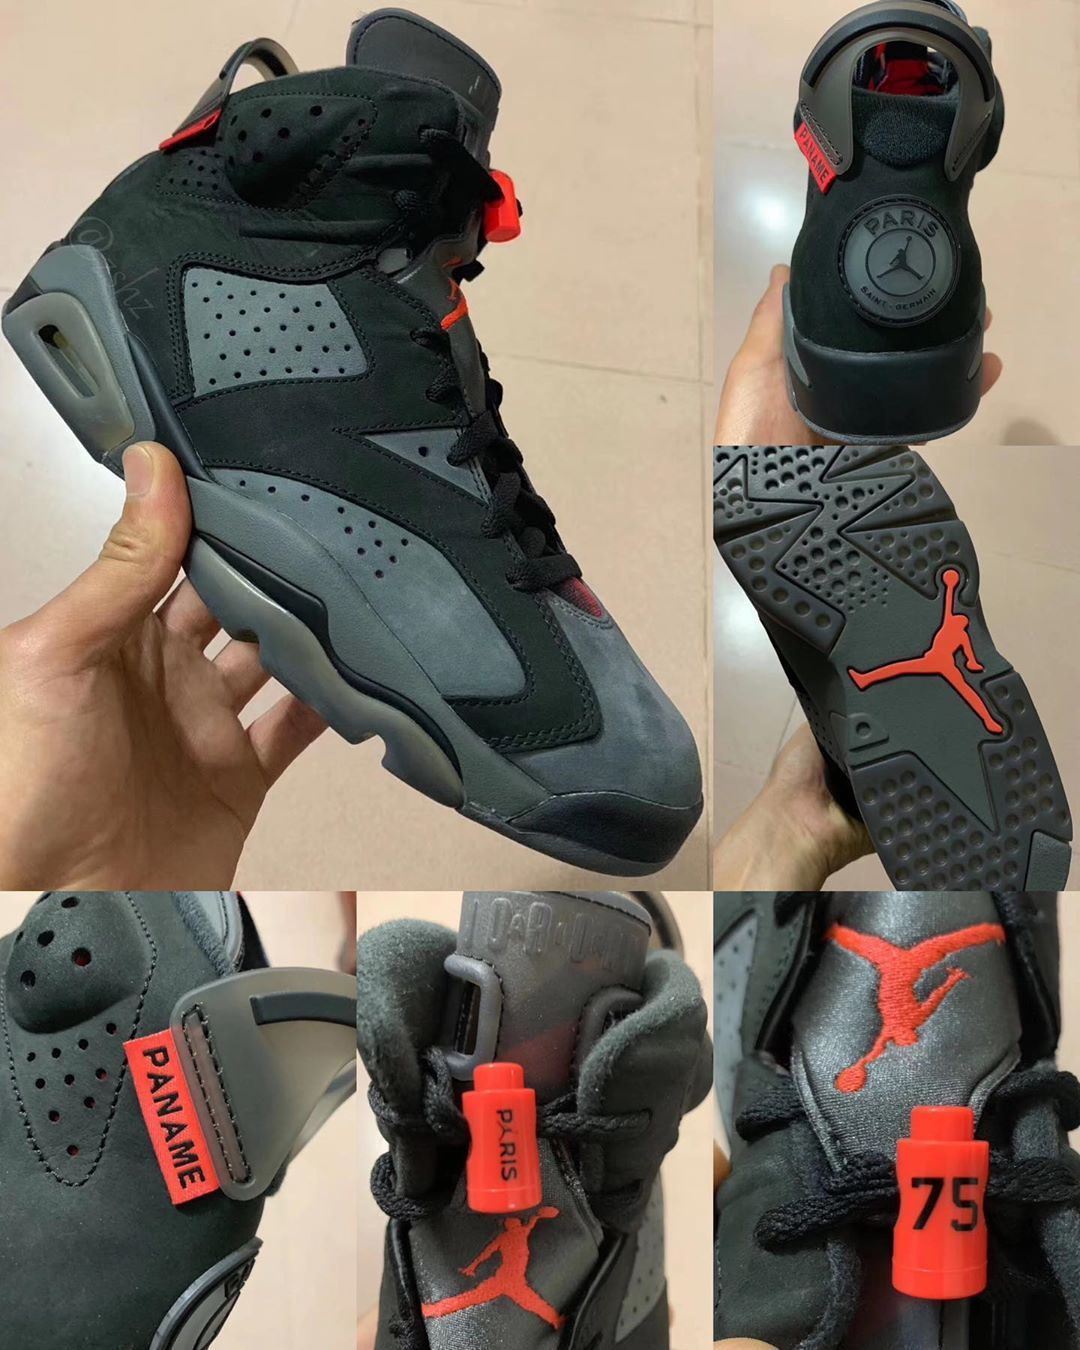 new concept 2bda8 50281 2019 Air Jordan Retro 6 #PSG Iron Grey/Infrared 23-Black ...